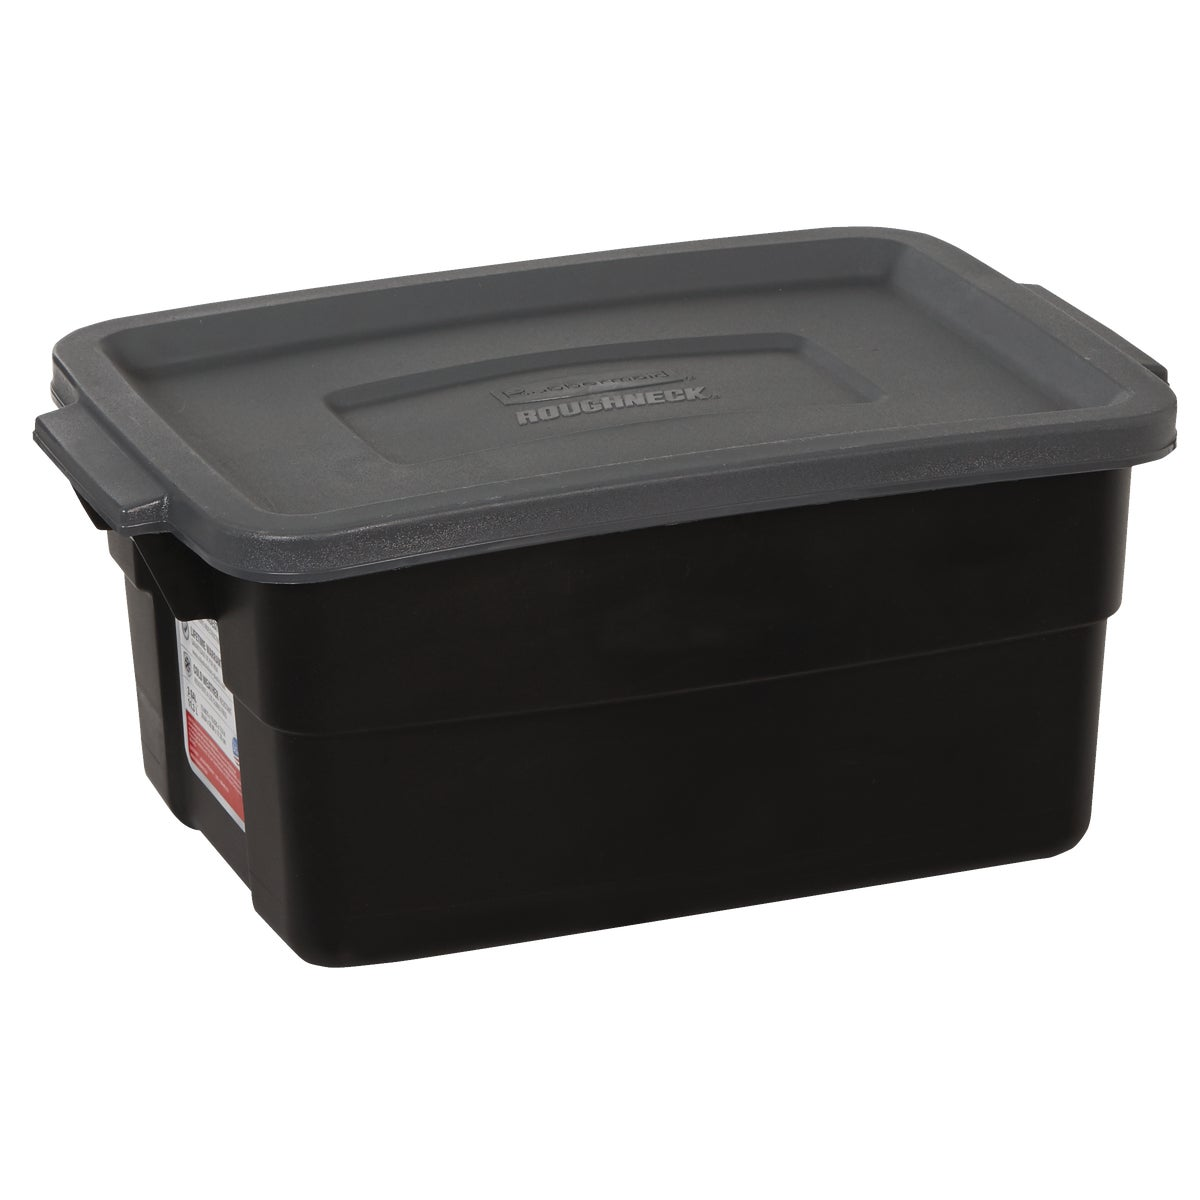 3GAL INDIGO STORAGE BOX - 221300DIM by Rubbermaid Home